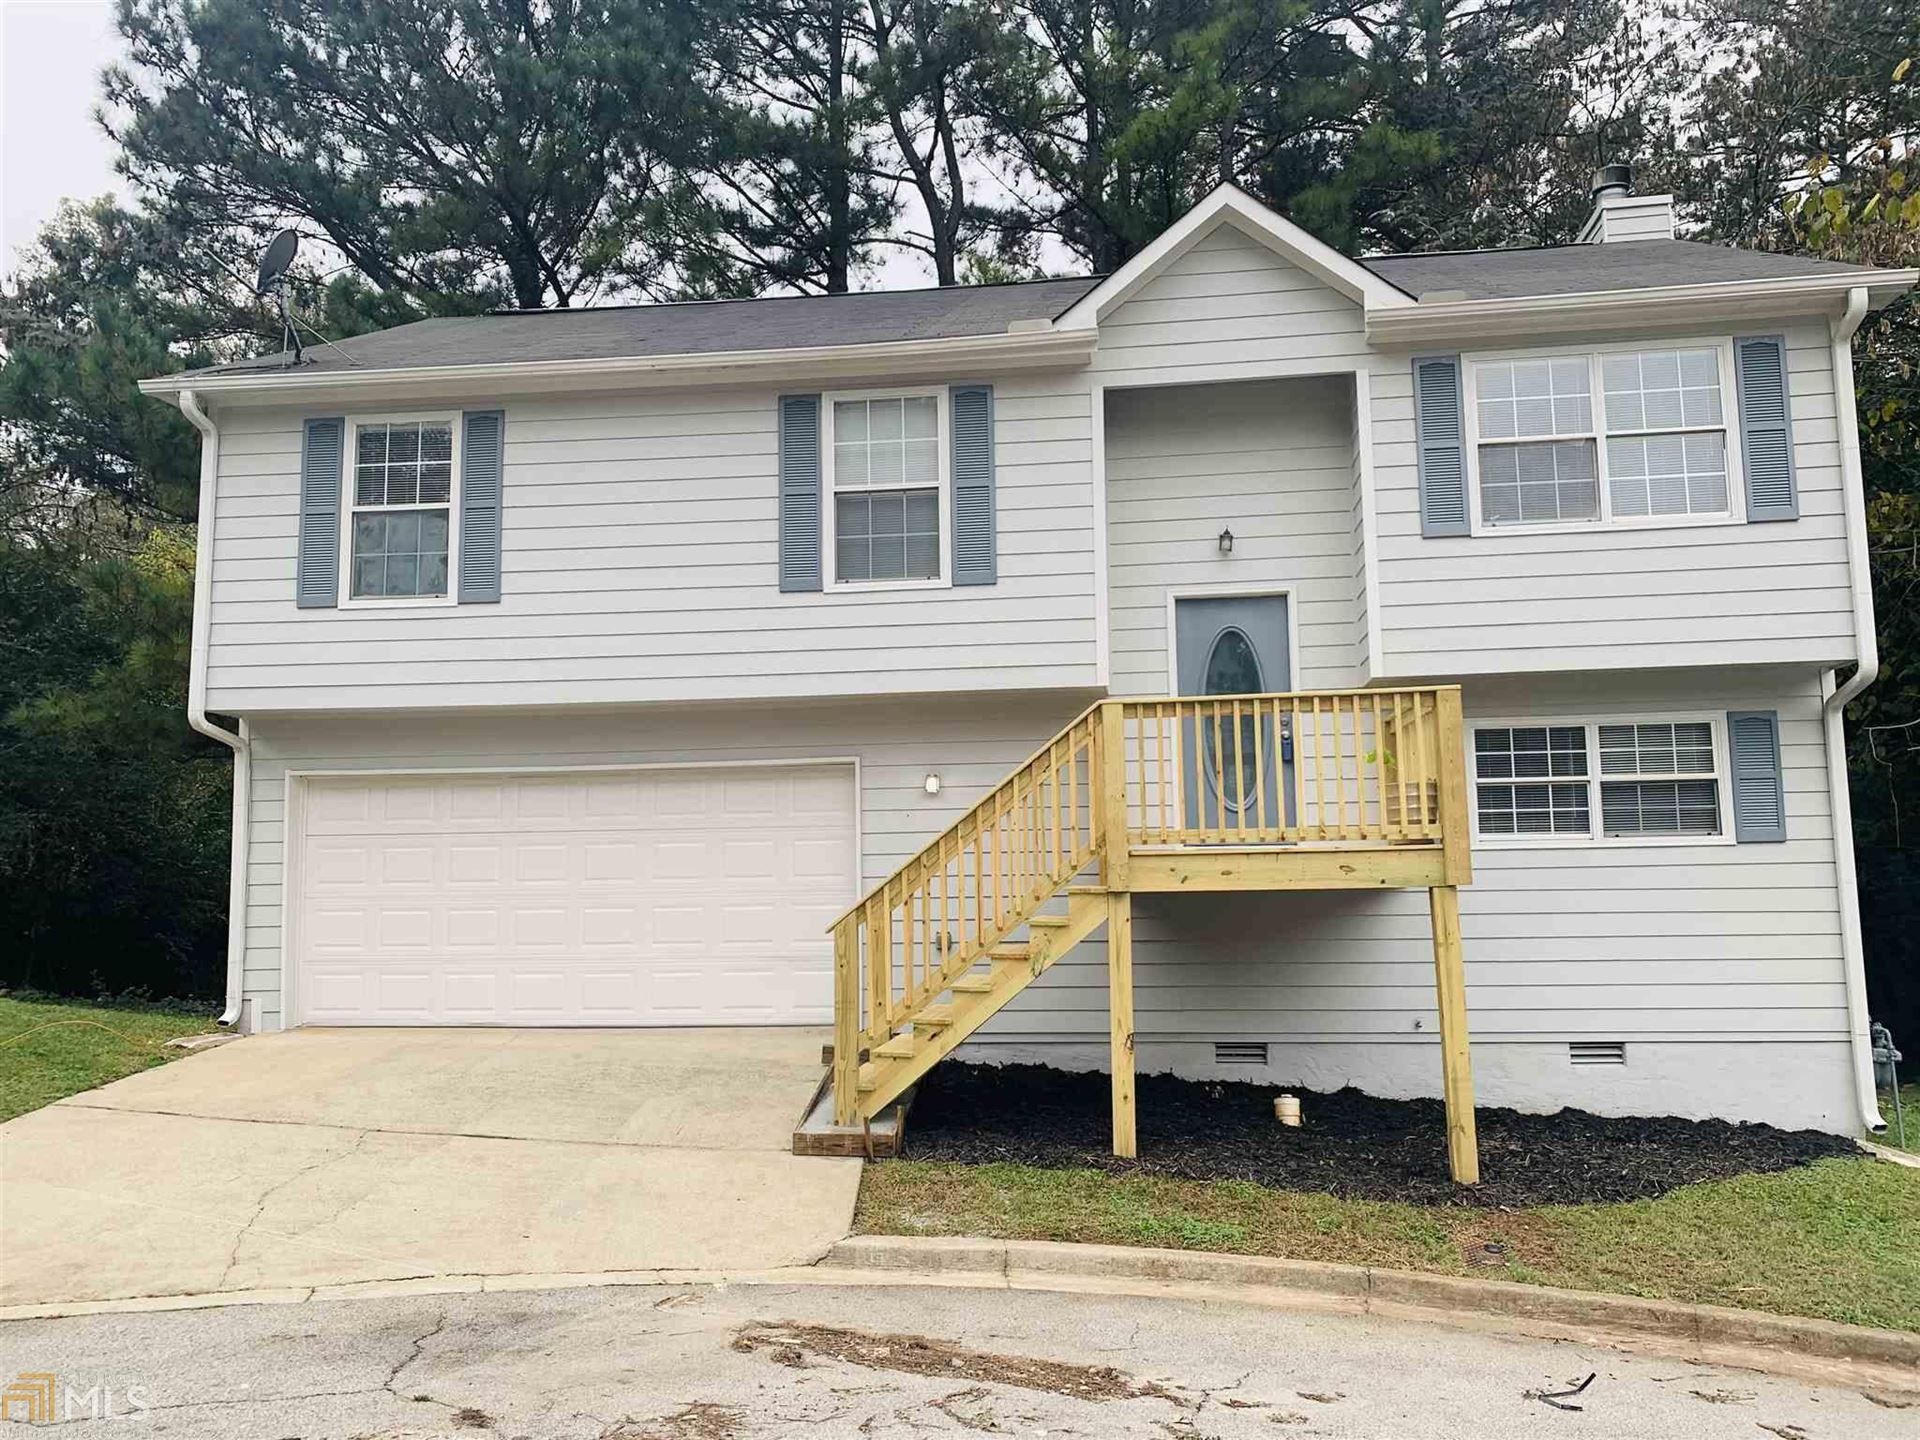 4580 Thomas Jefferson Ct, Stone Mountain, GA 30083 - MLS#: 8880488